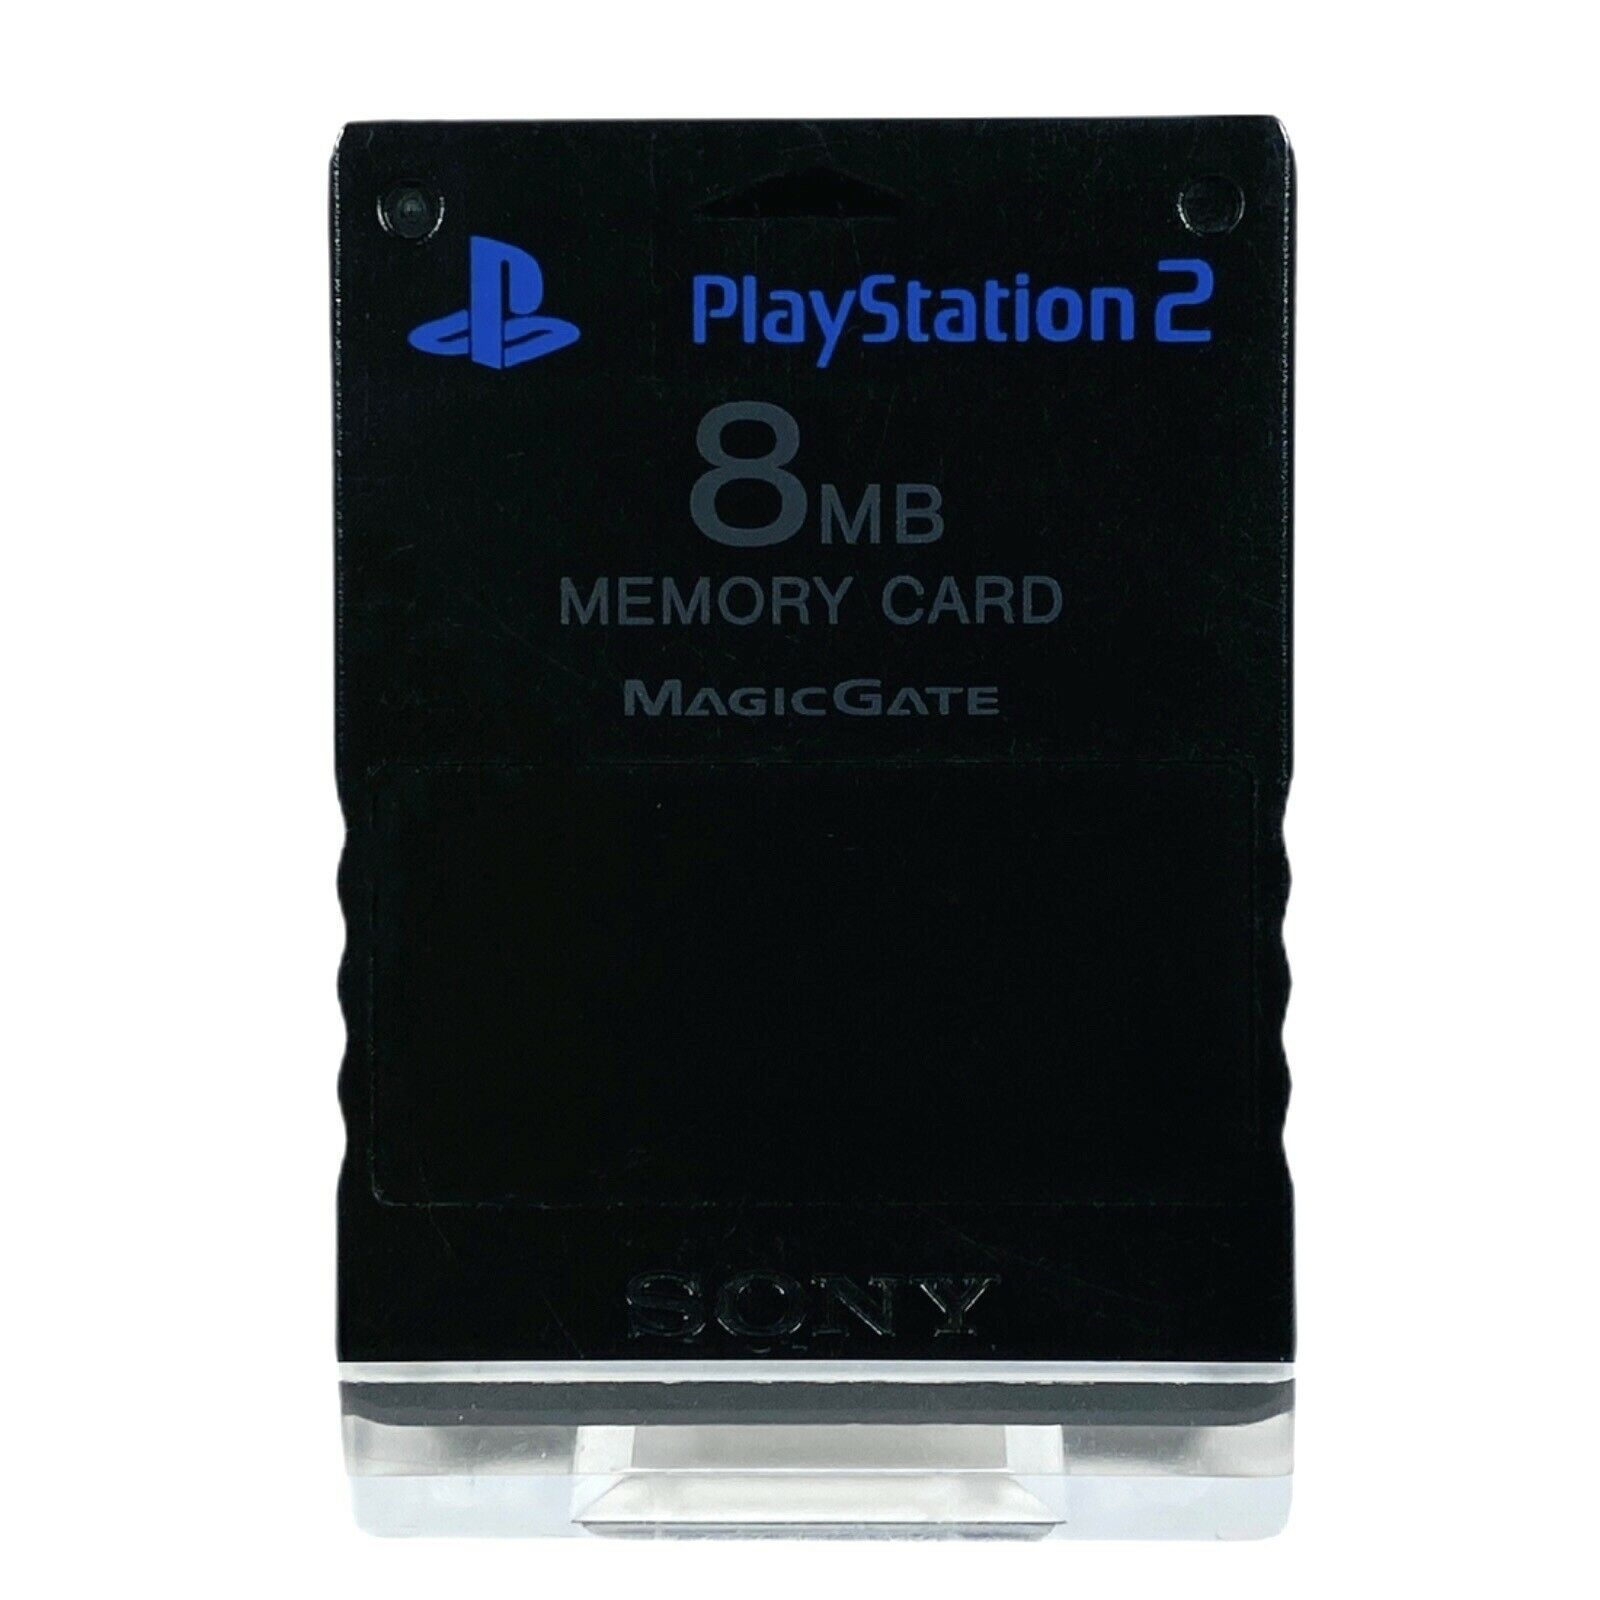 MagicGate Official Sony PlayStation 2 Memory Card 8MB Magic Gate + Quick Post